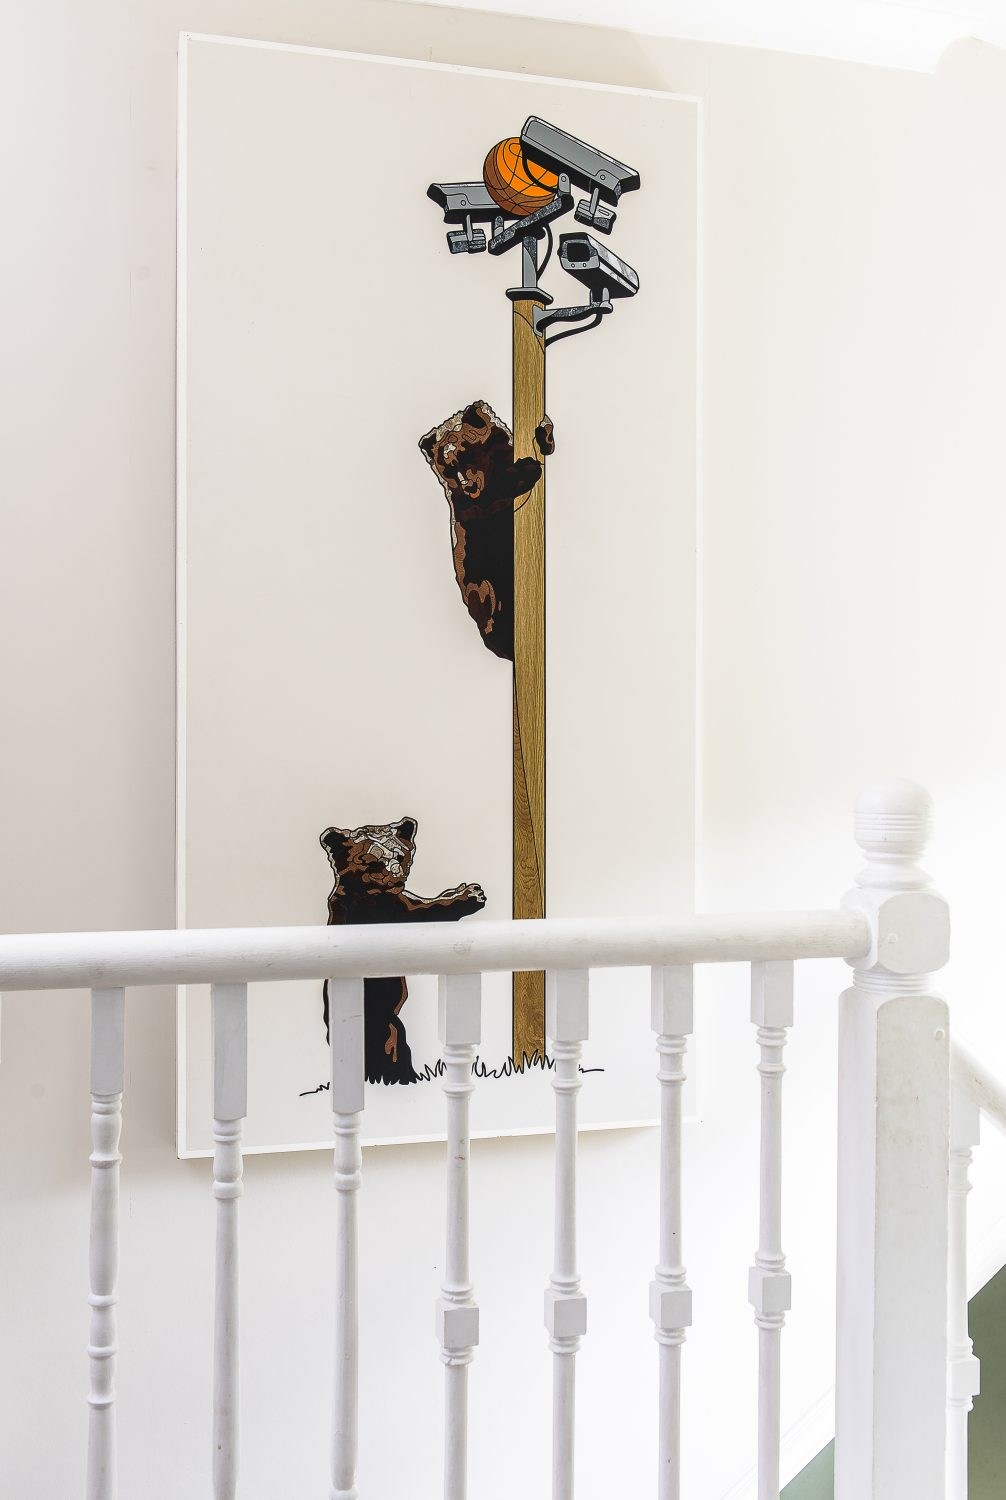 A piece featuring bears and CCTV cameras by mixed media artist Sean Alexander